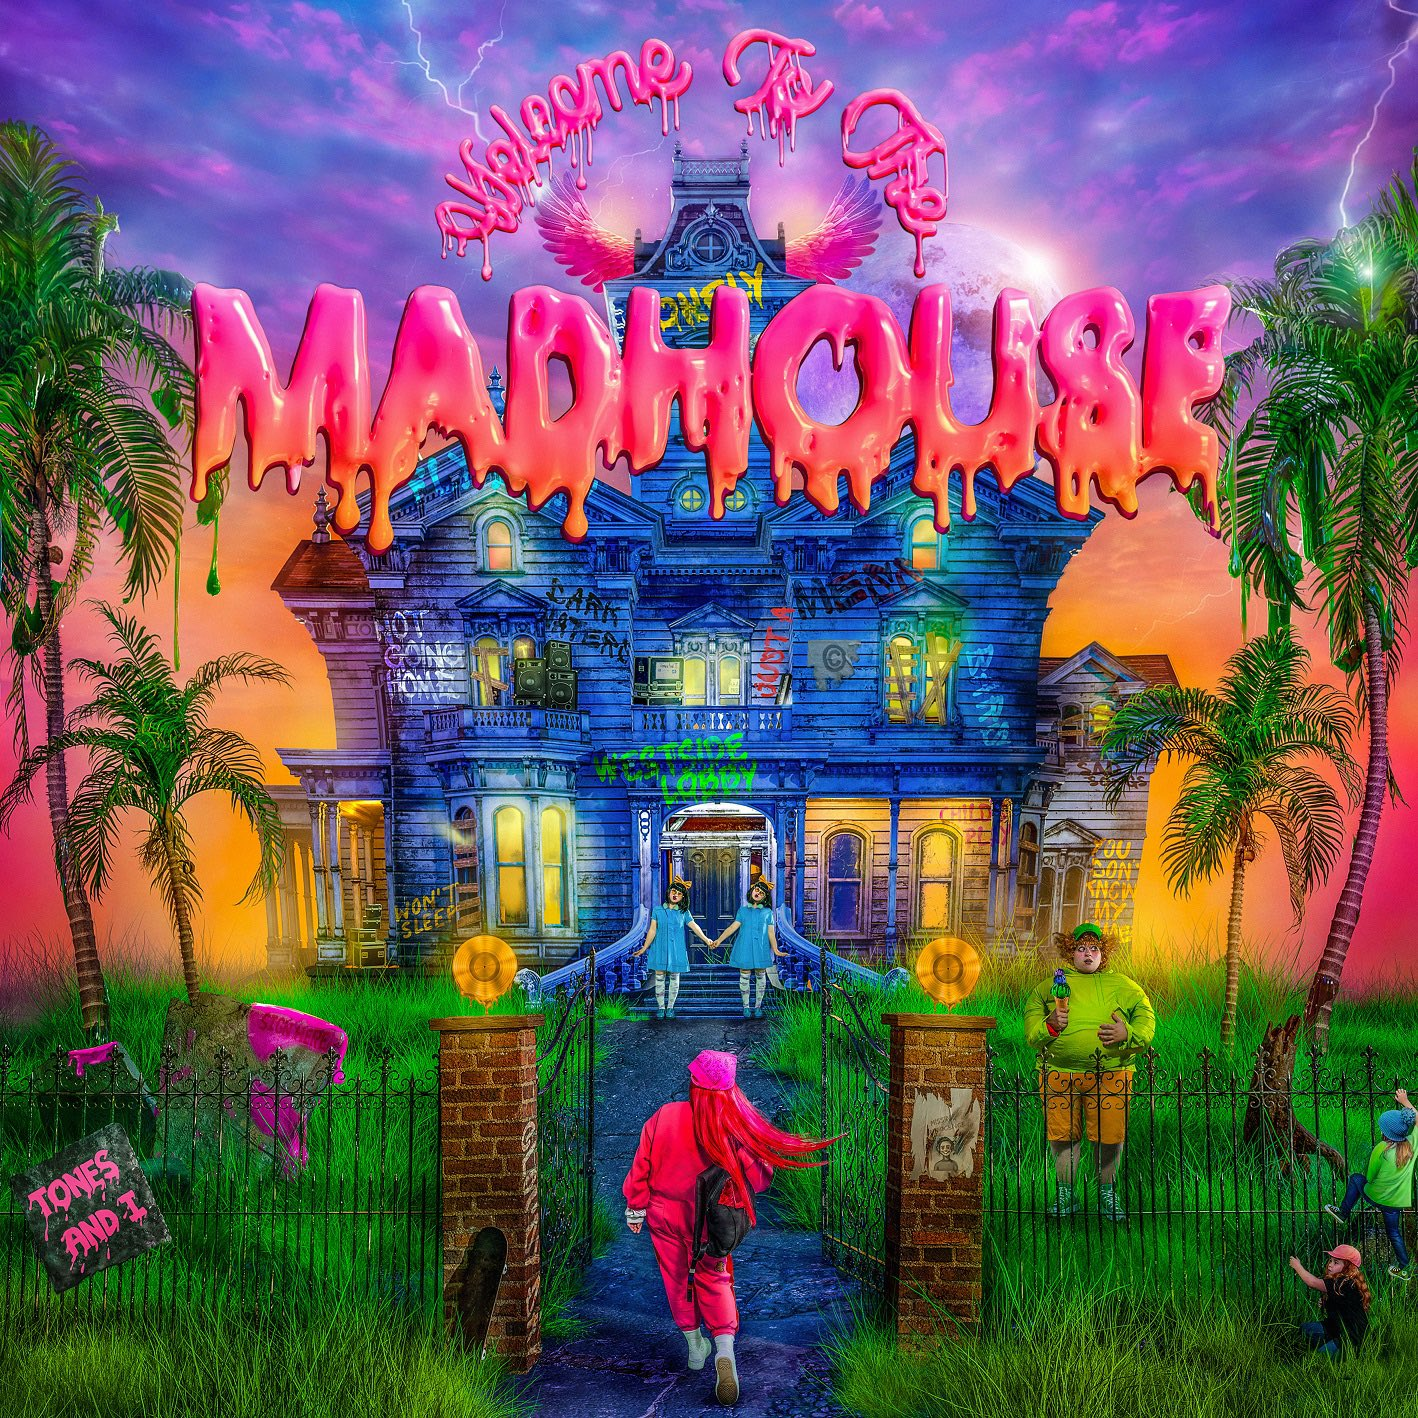 Tones And I Welcome to the Madhouse album cover art 2021